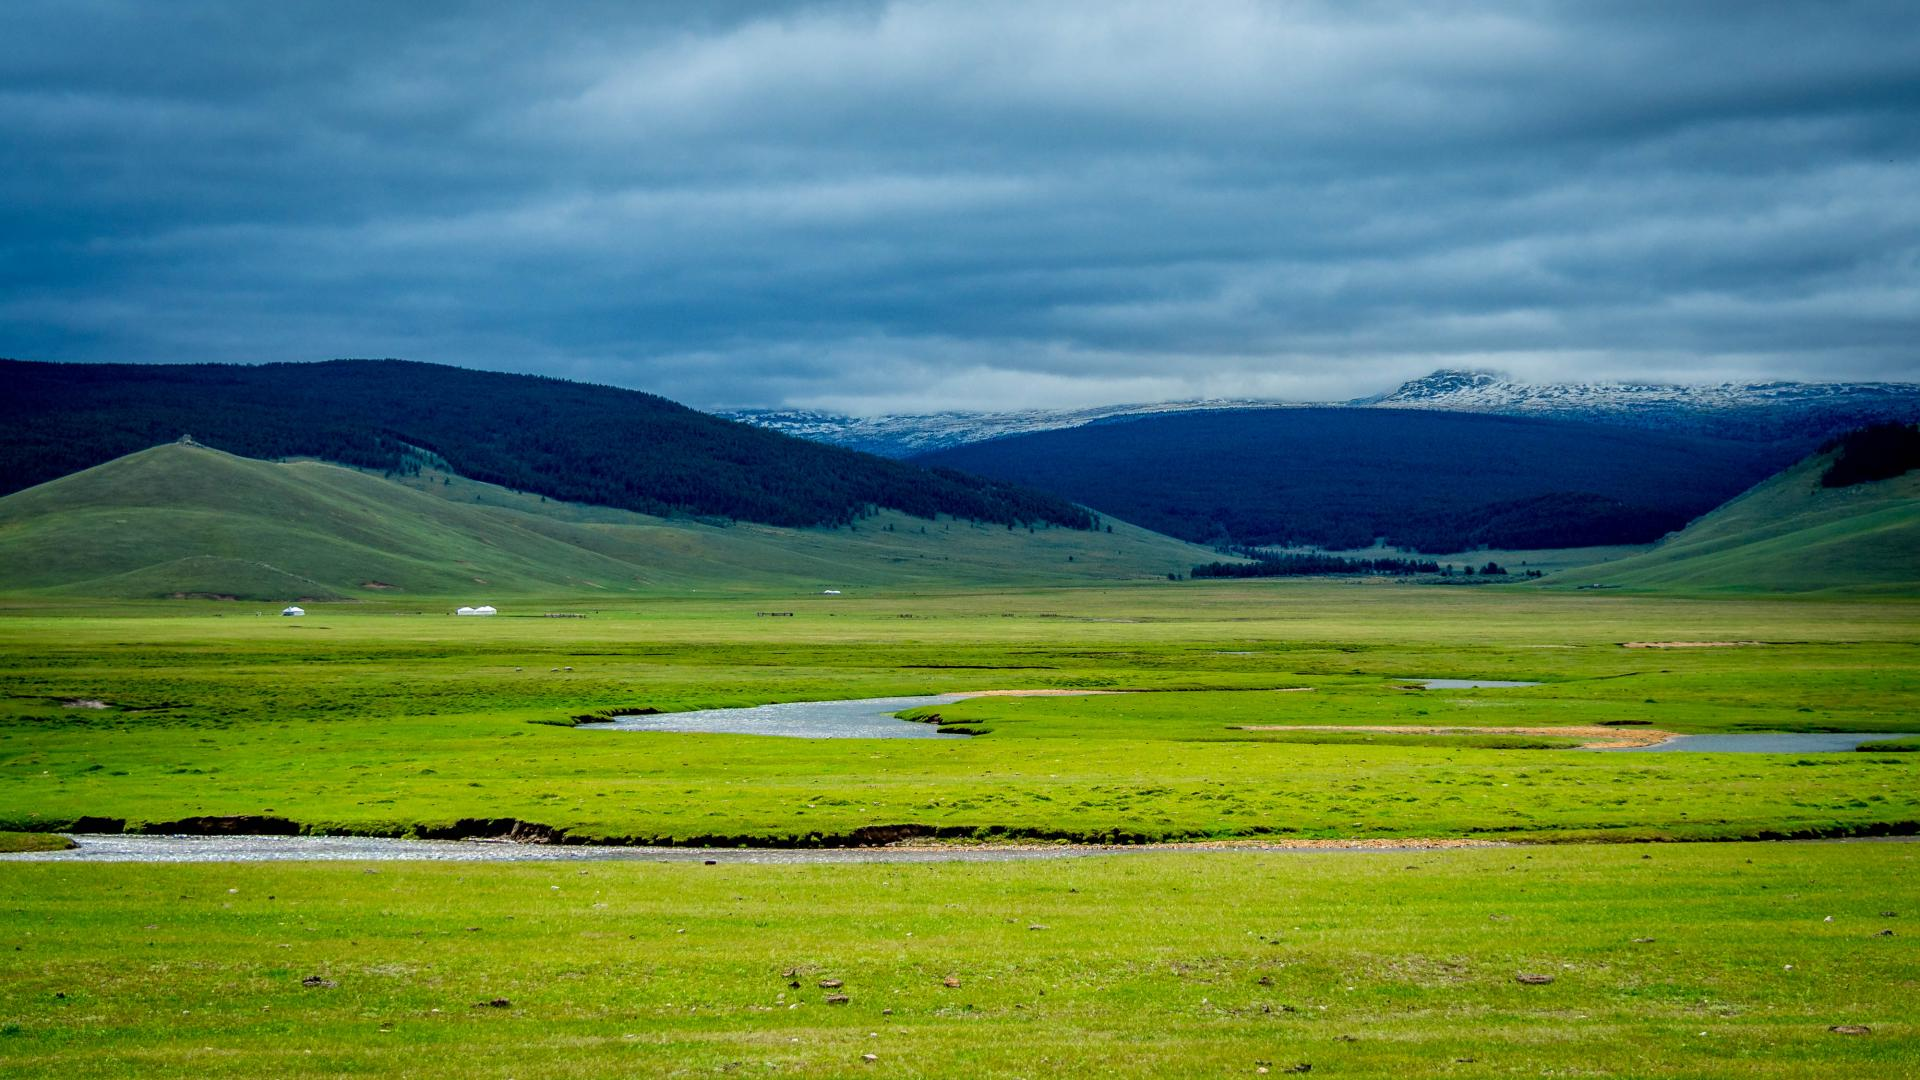 Mongolie64